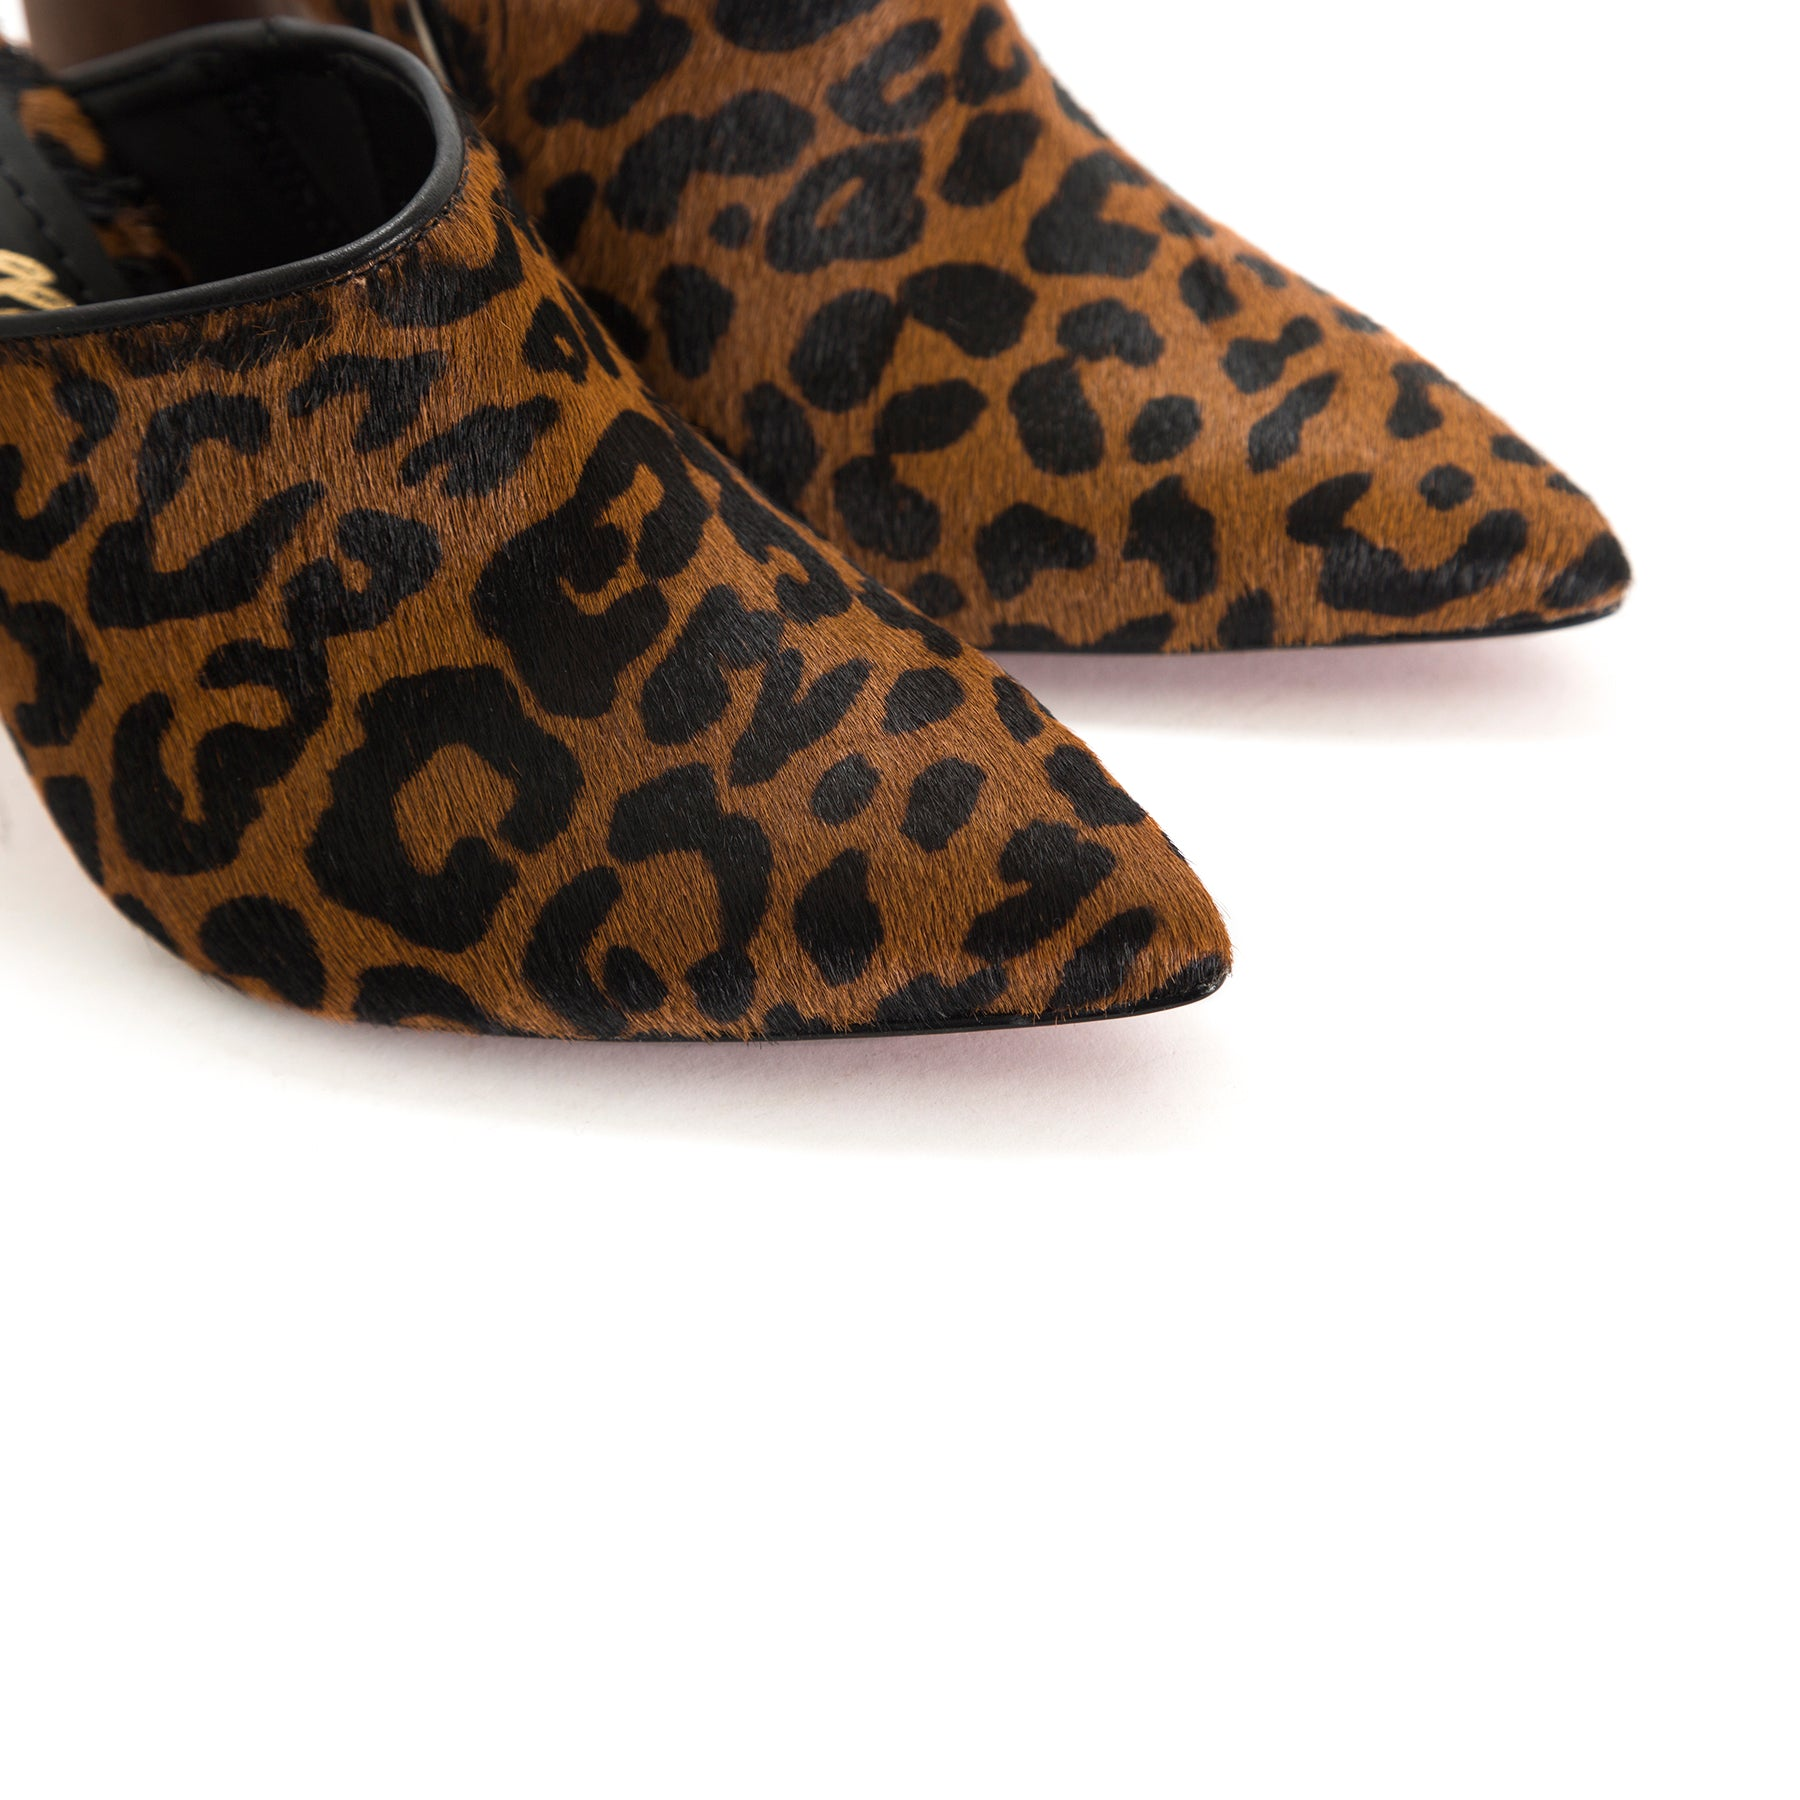 Cougar Honey/Black Leopard Fur Mules